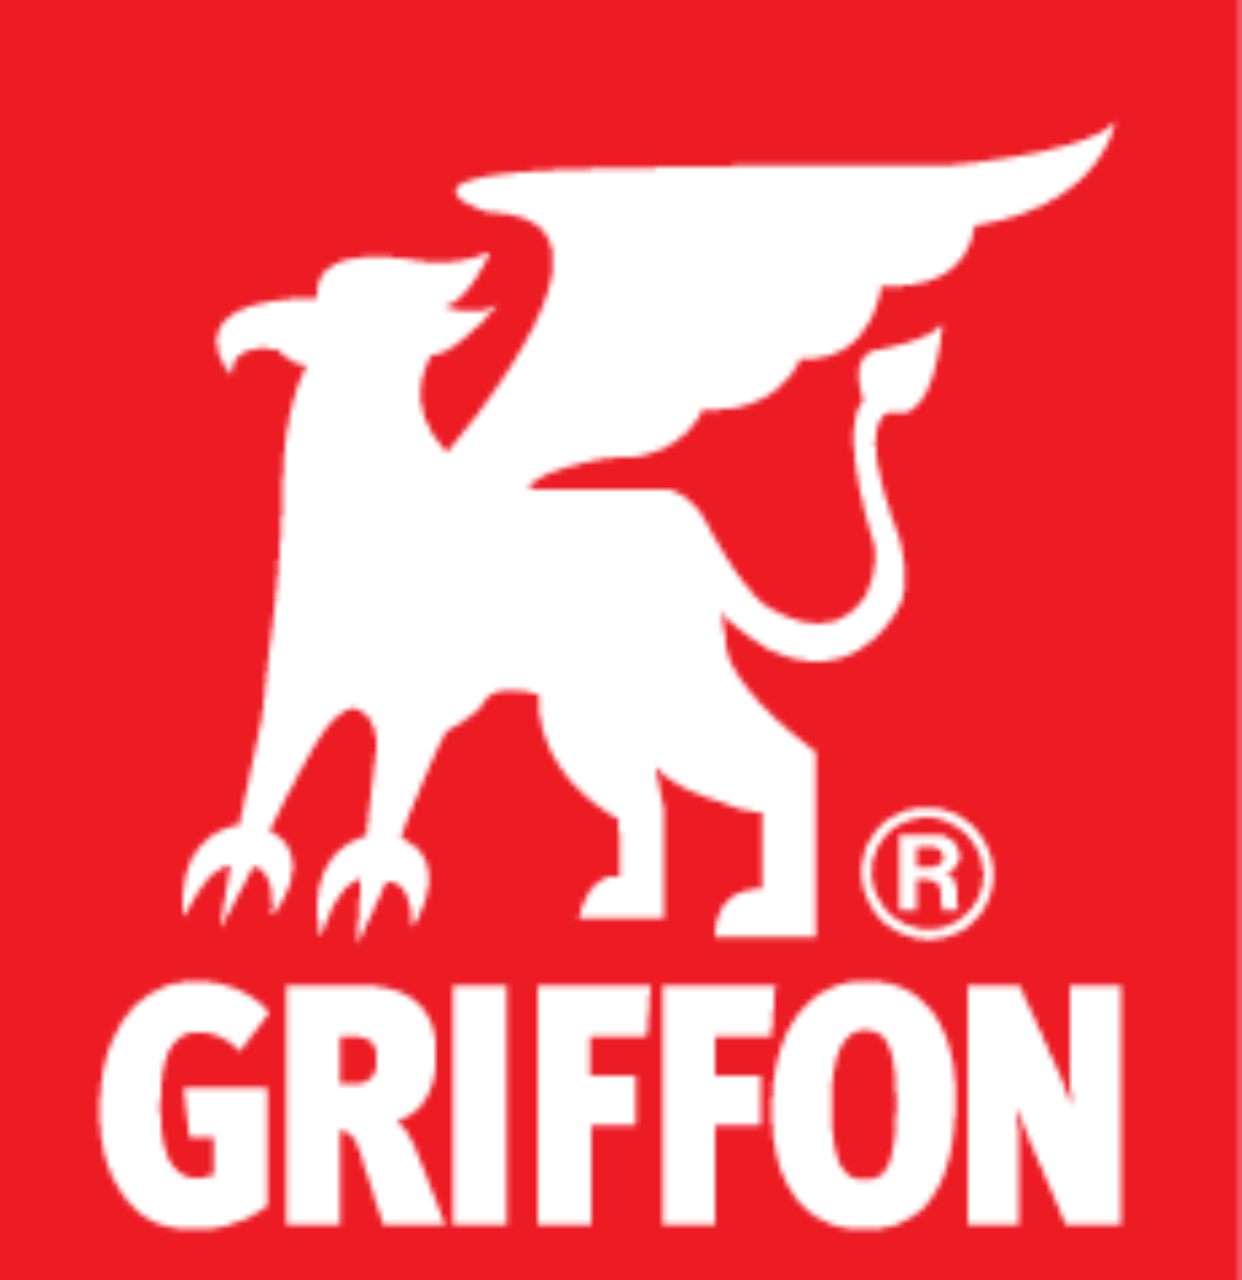 griffon committed to professionals